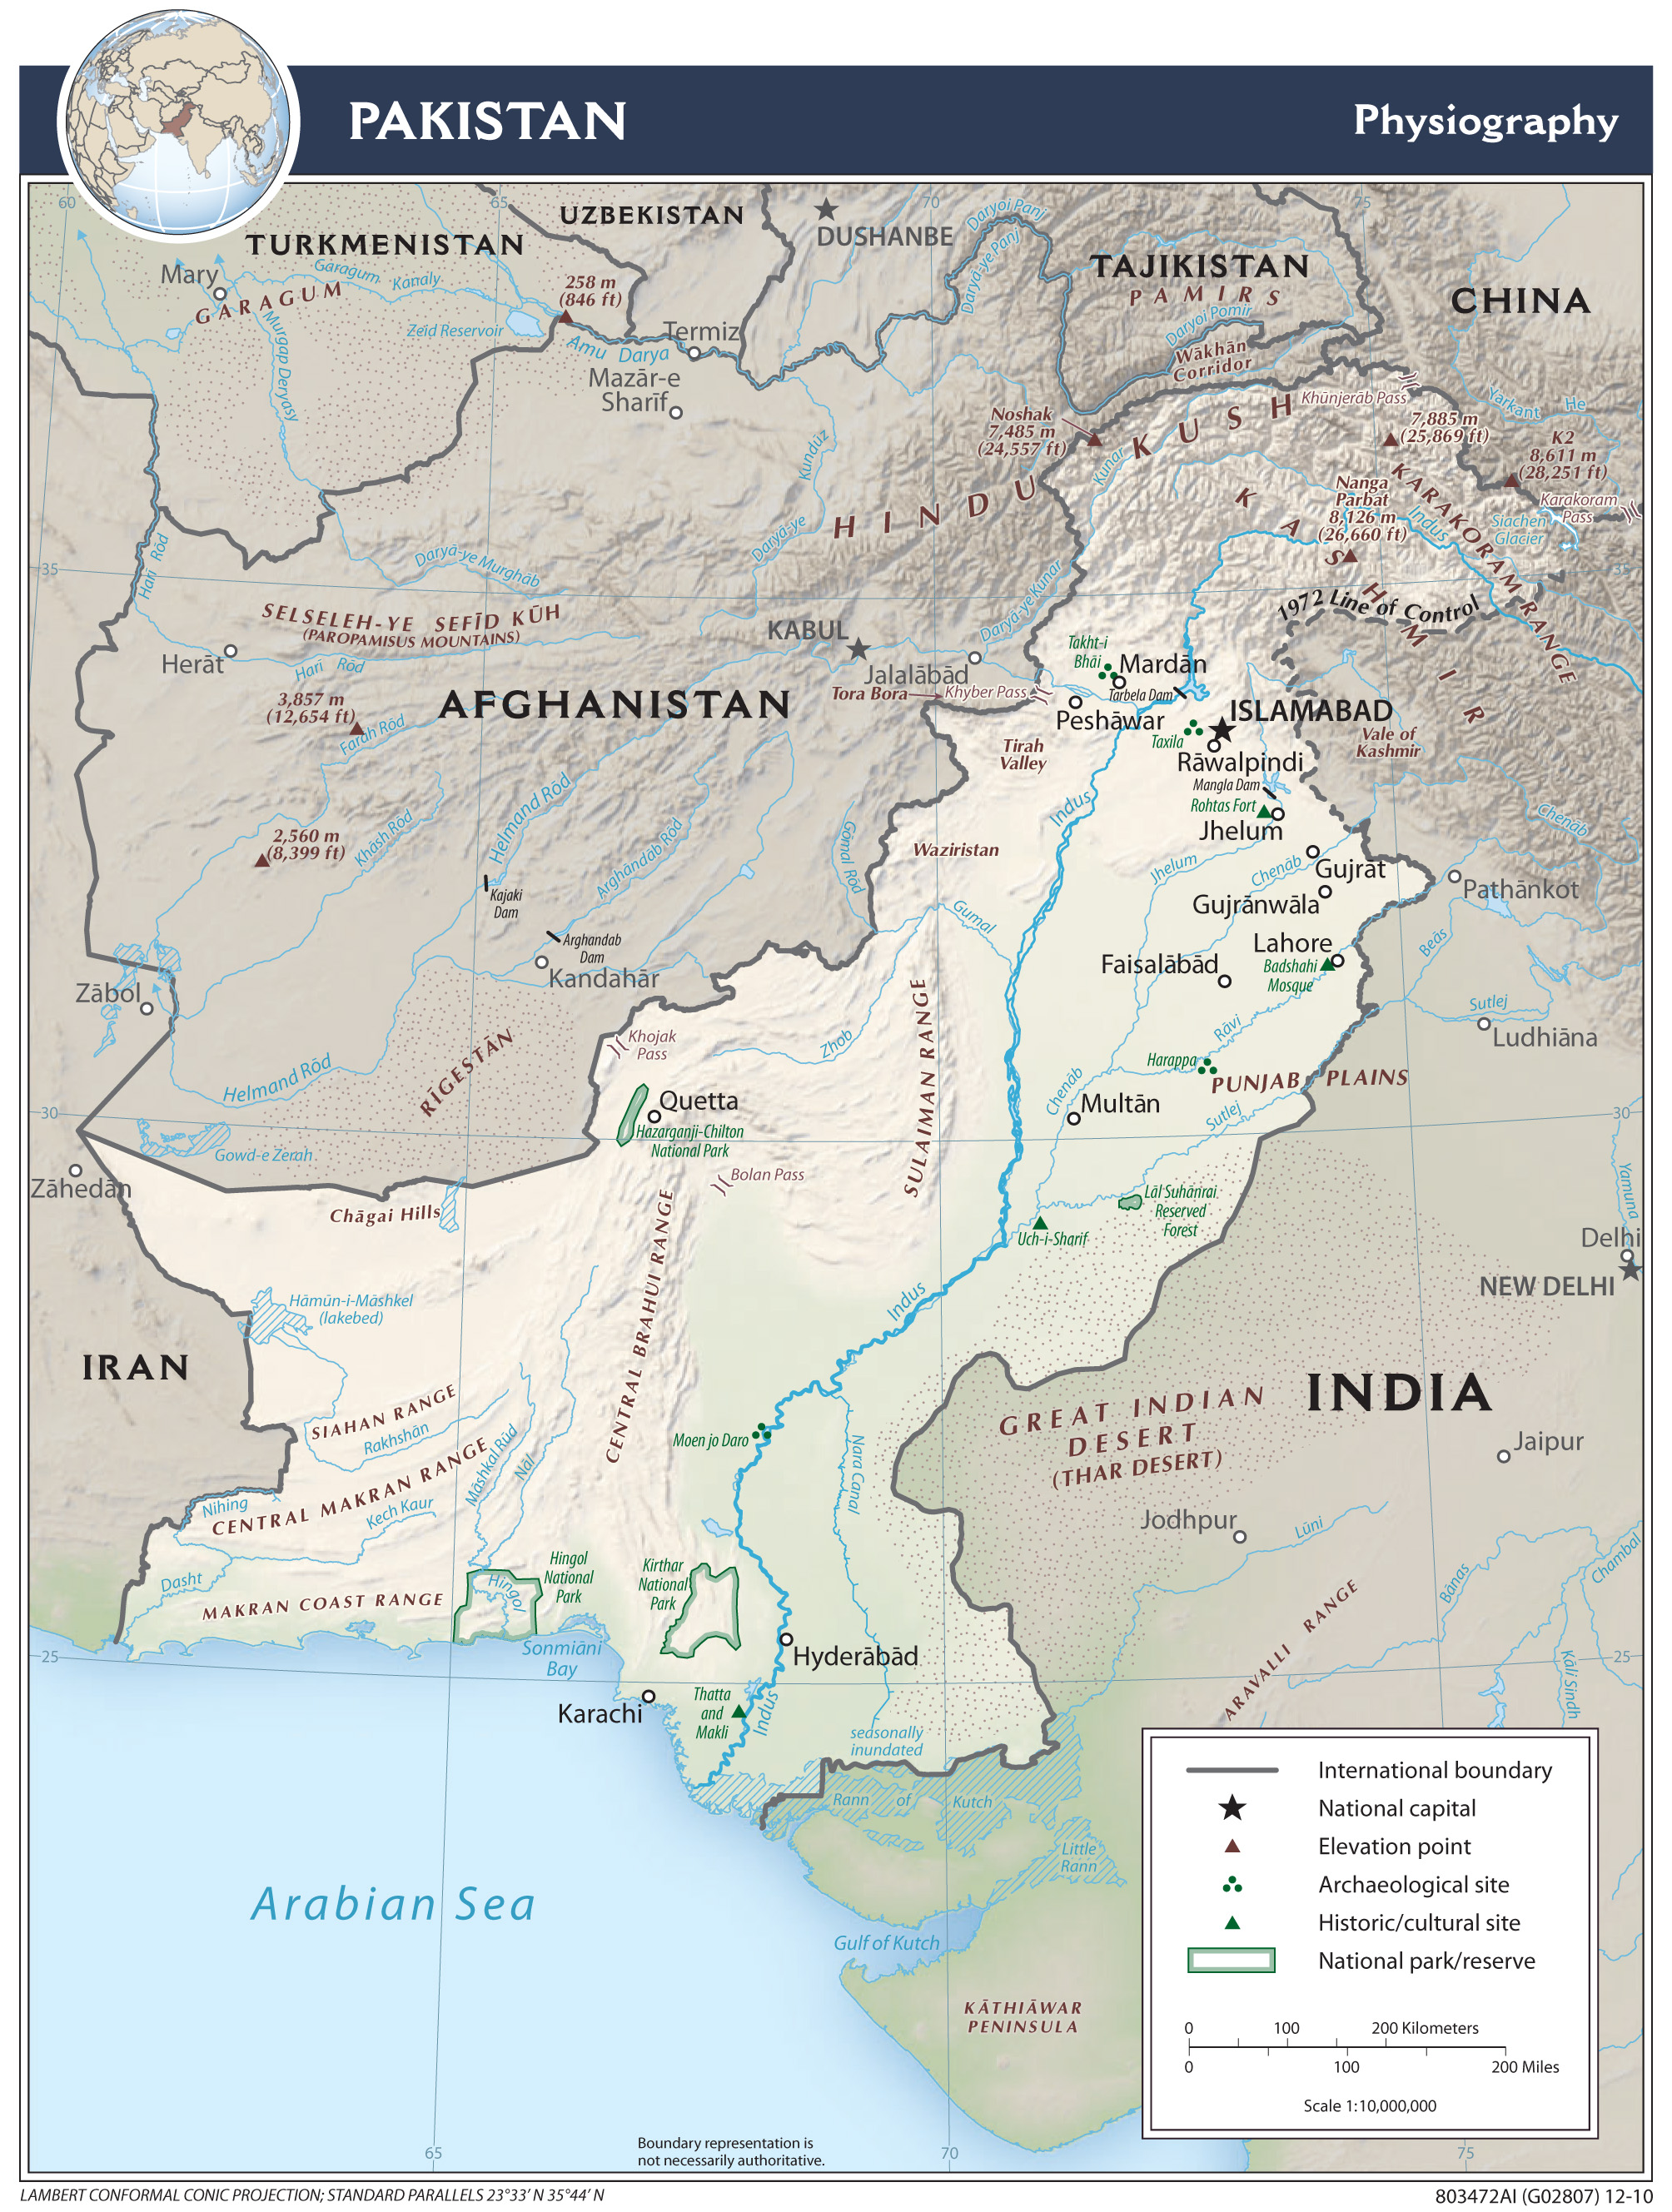 Pakistan maps perry castaeda map collection ut library online map collection gumiabroncs Image collections